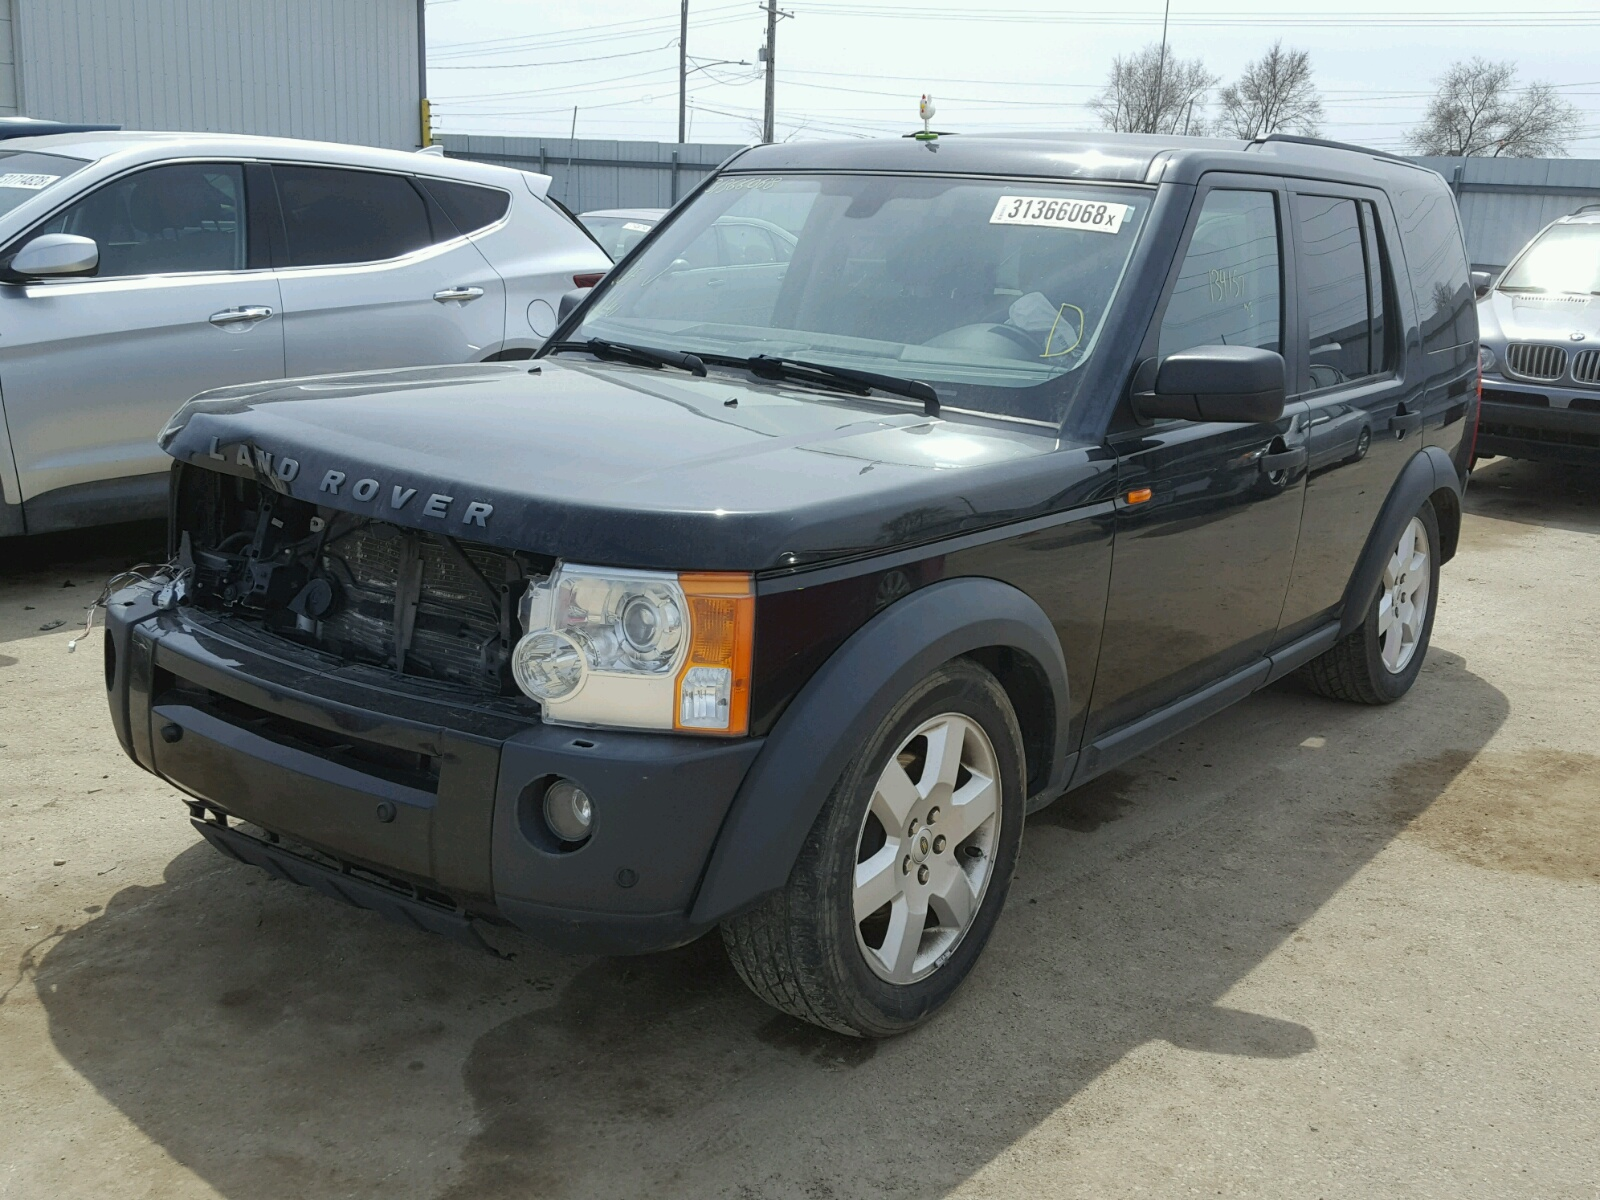 title copart tx right salvage view landrover on for rover sale auto antonio land en hse auctions san carfinder silver in lot vehicle online